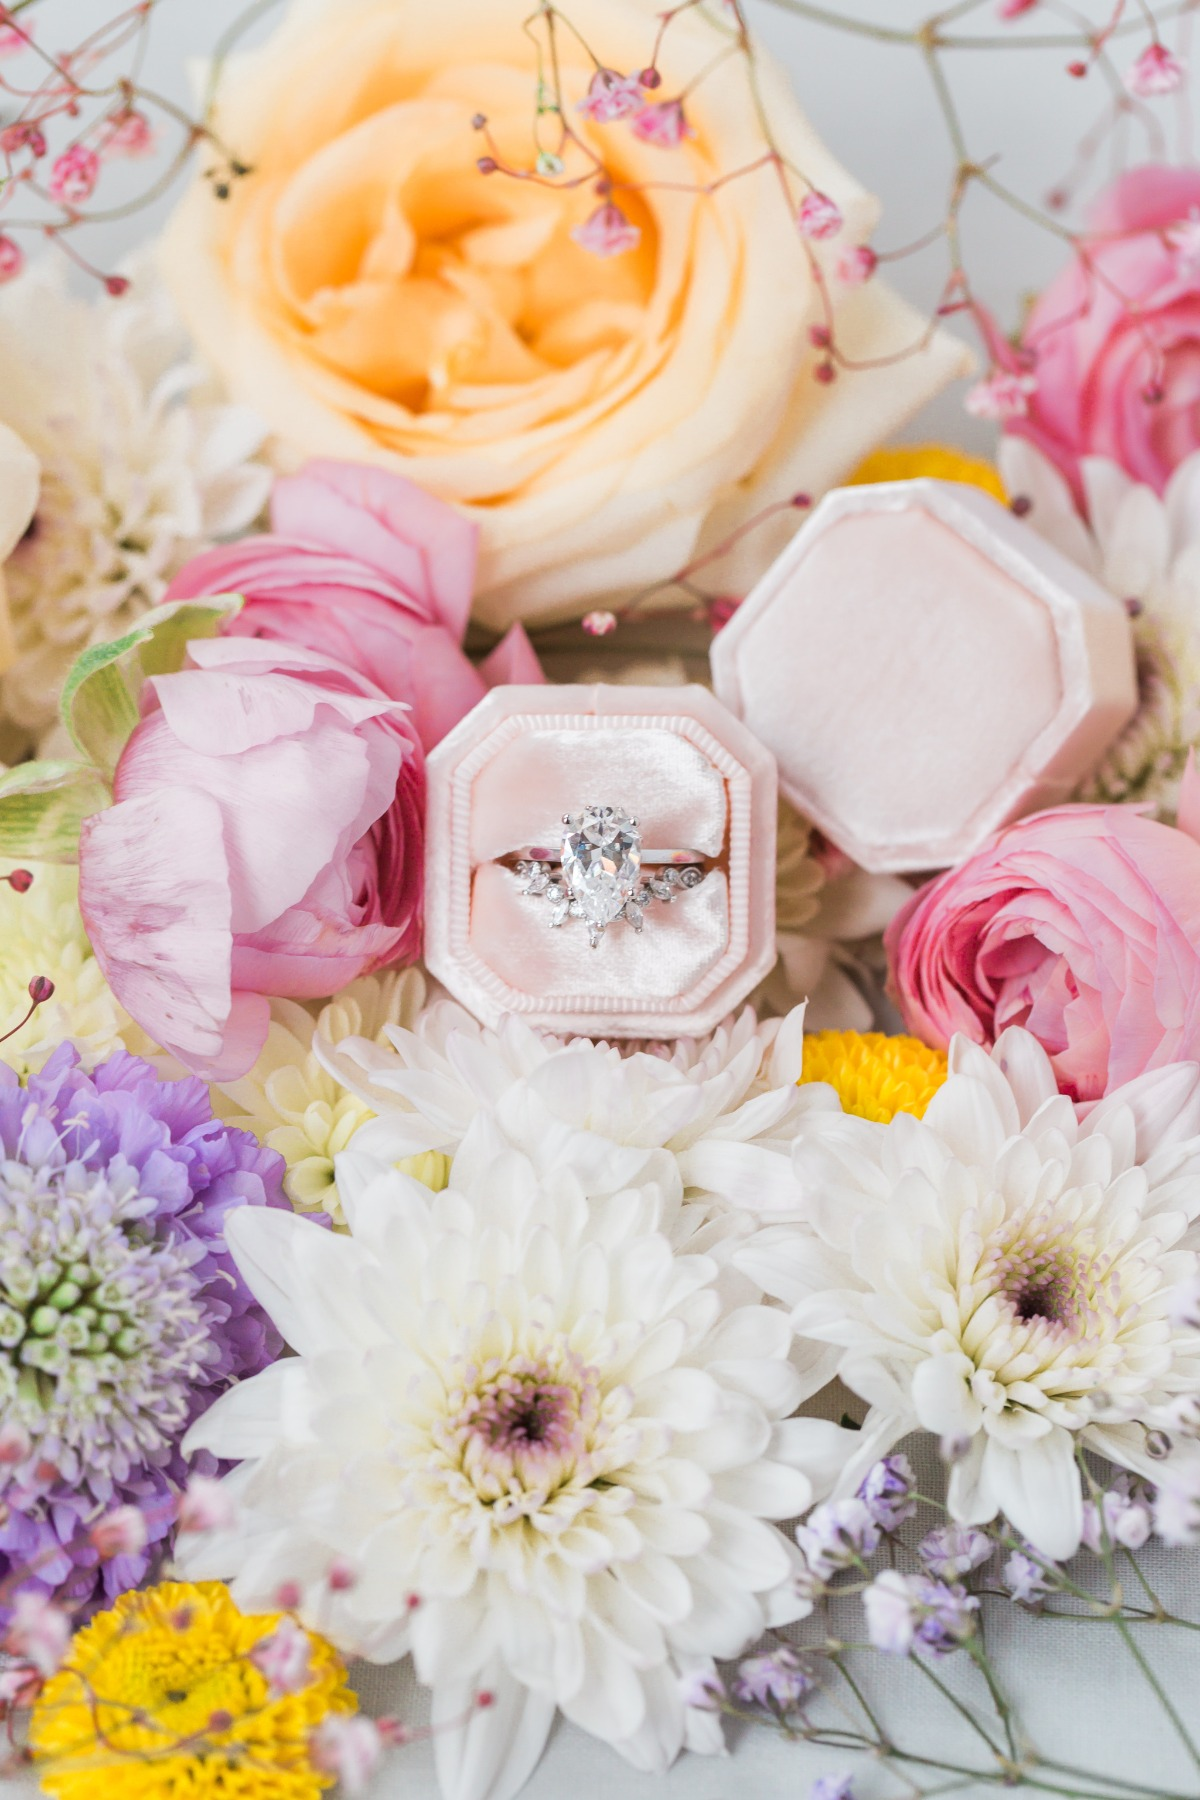 Engagement ring from  Stor Jewellery Co.